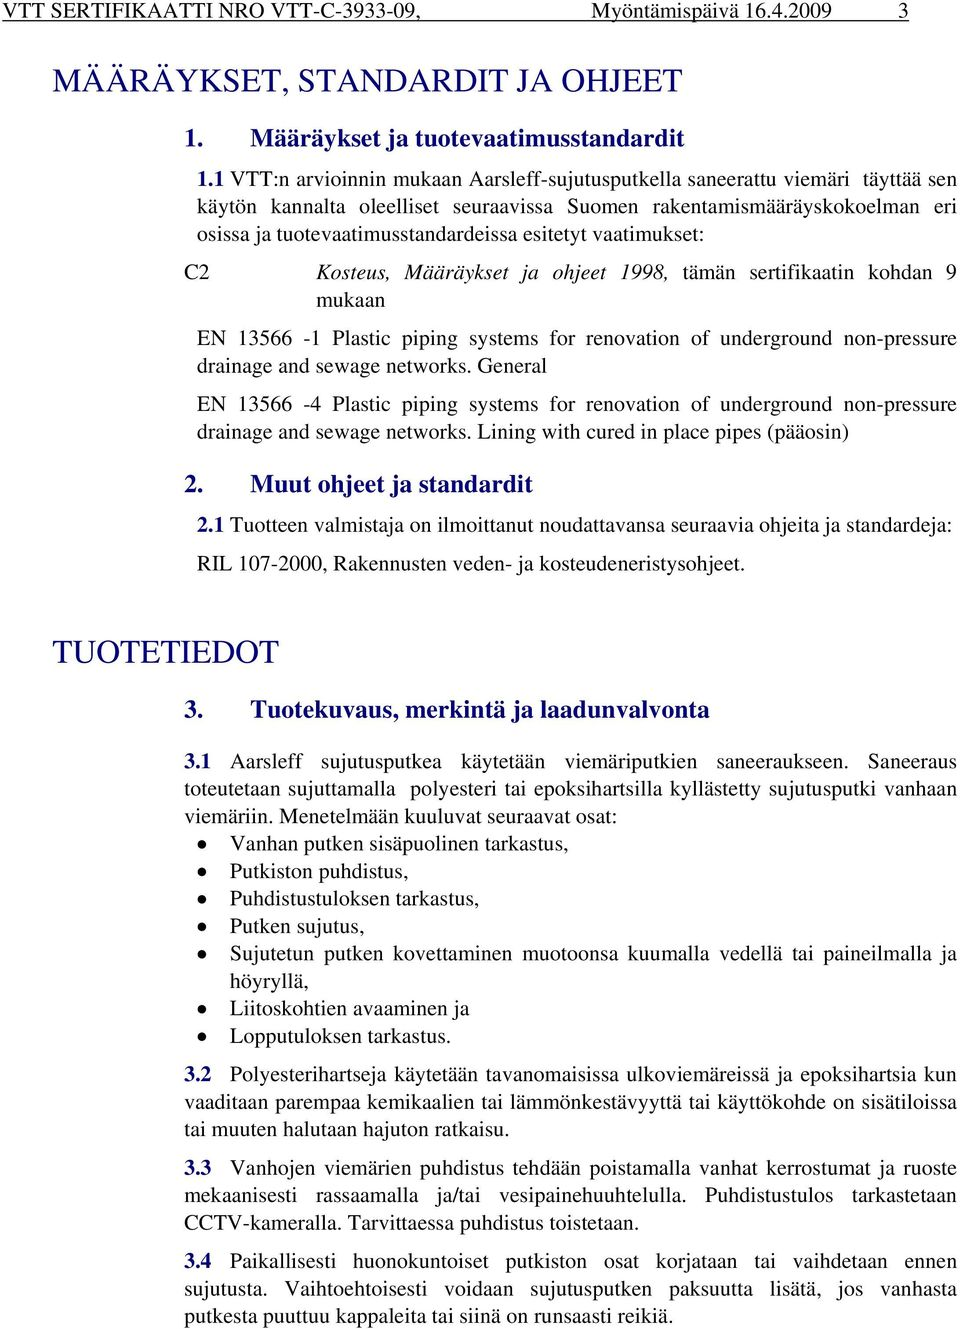 esitetyt vaatimukset: C2 Kosteus, Määräykset ja ohjeet 1998, tämän sertifikaatin kohdan 9 mukaan EN 13566-1 Plastic piping systems for renovation of underground non-pressure drainage and sewage